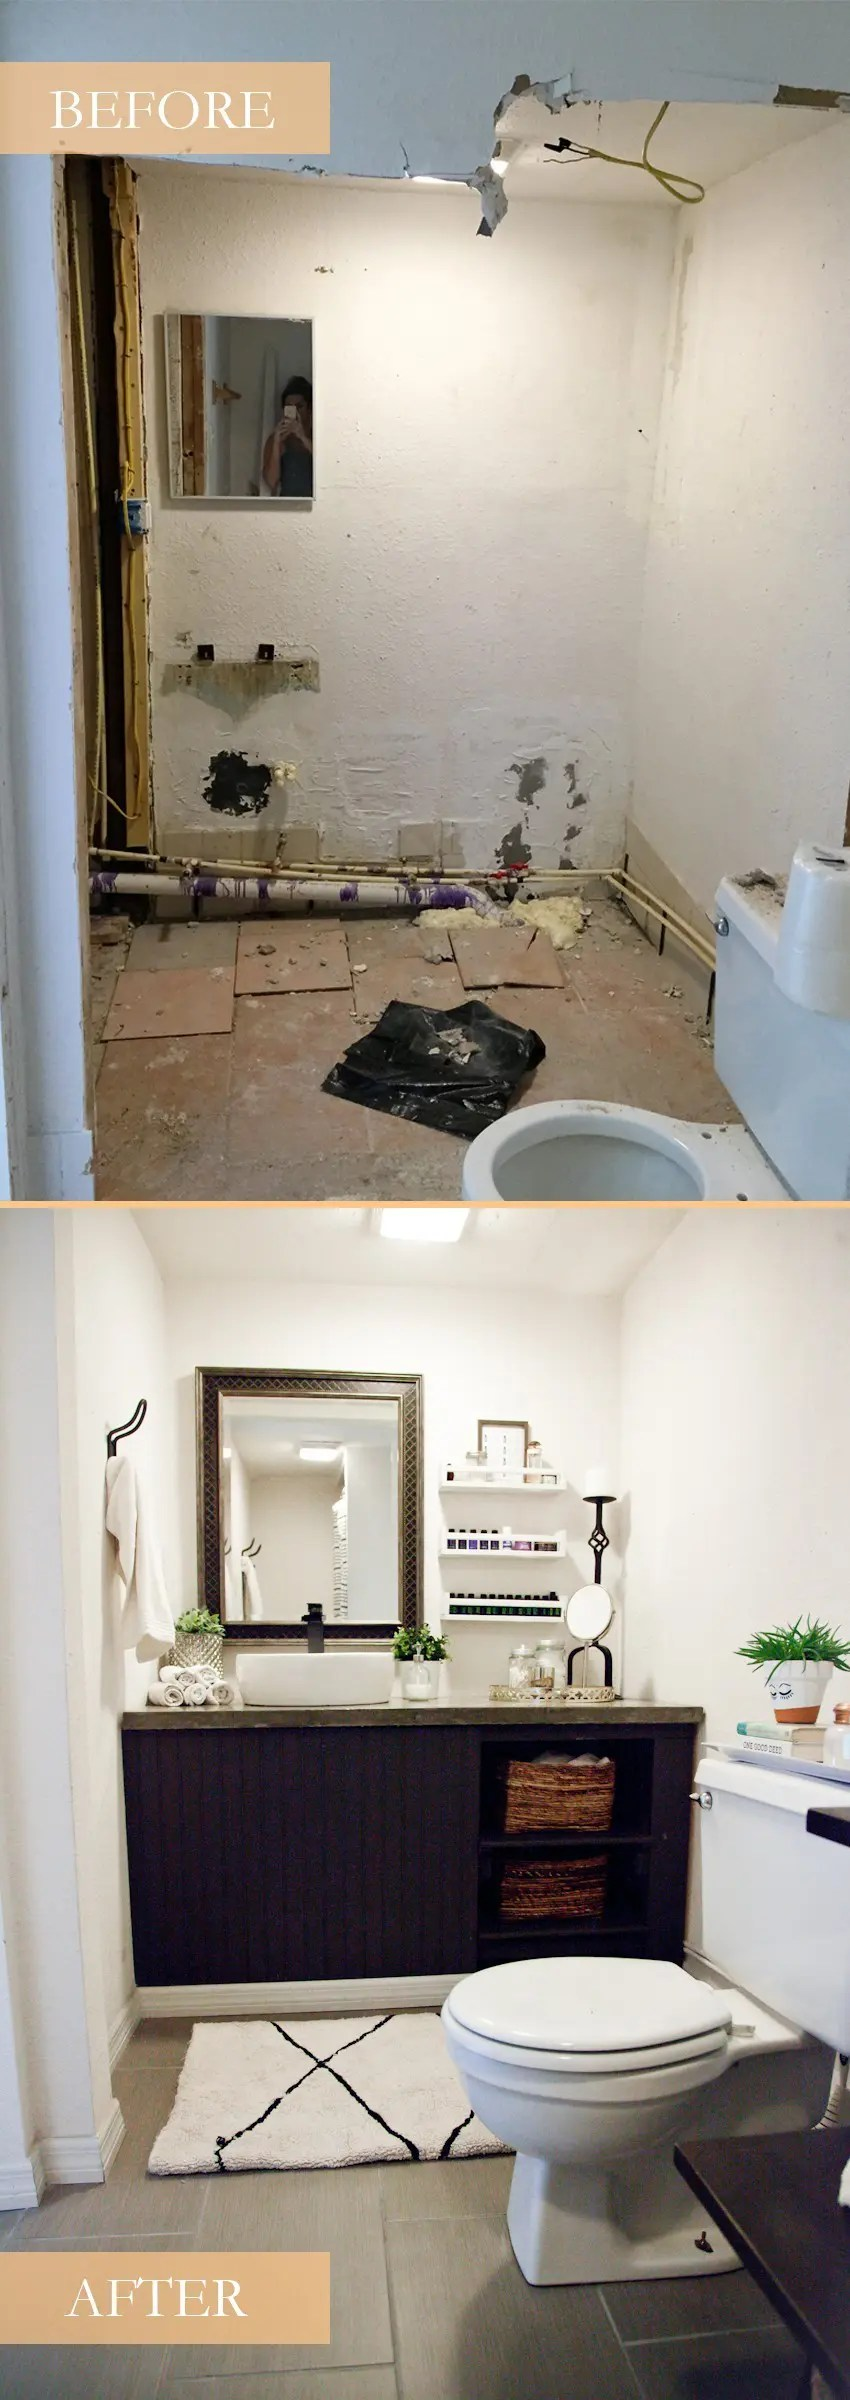 Trend Our light and bright simple studio bathroom remodel A Before and After